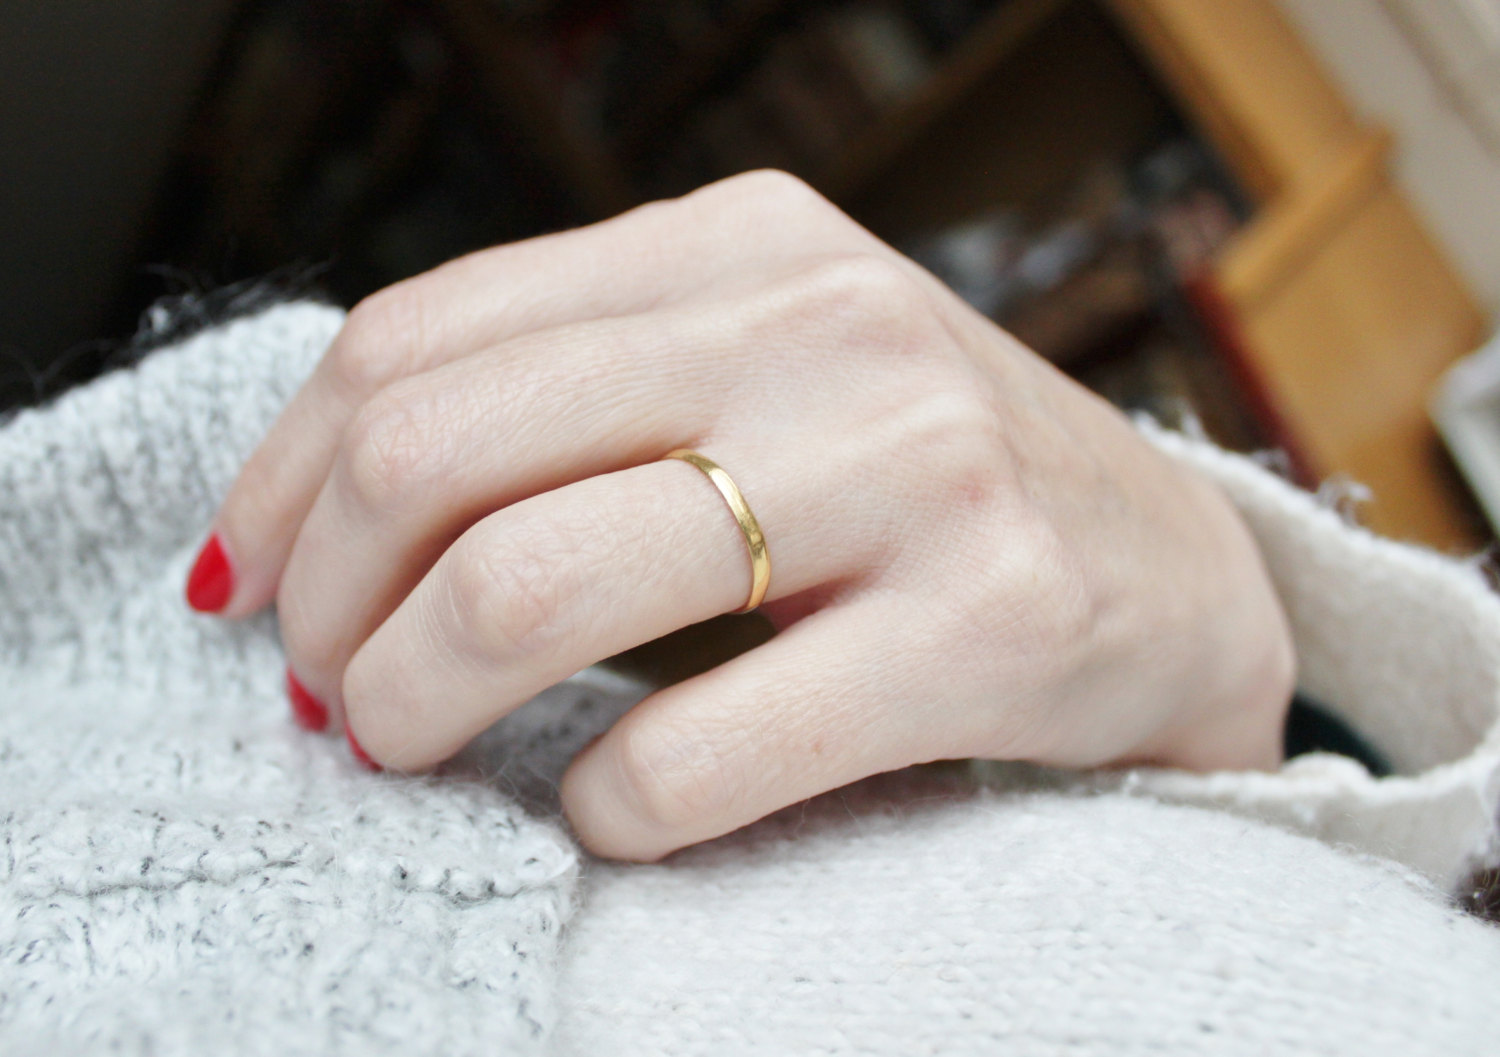 Vintage Gold Victorian Band | Ethical Matching Wedding Bands | Keeper & Co. Blog